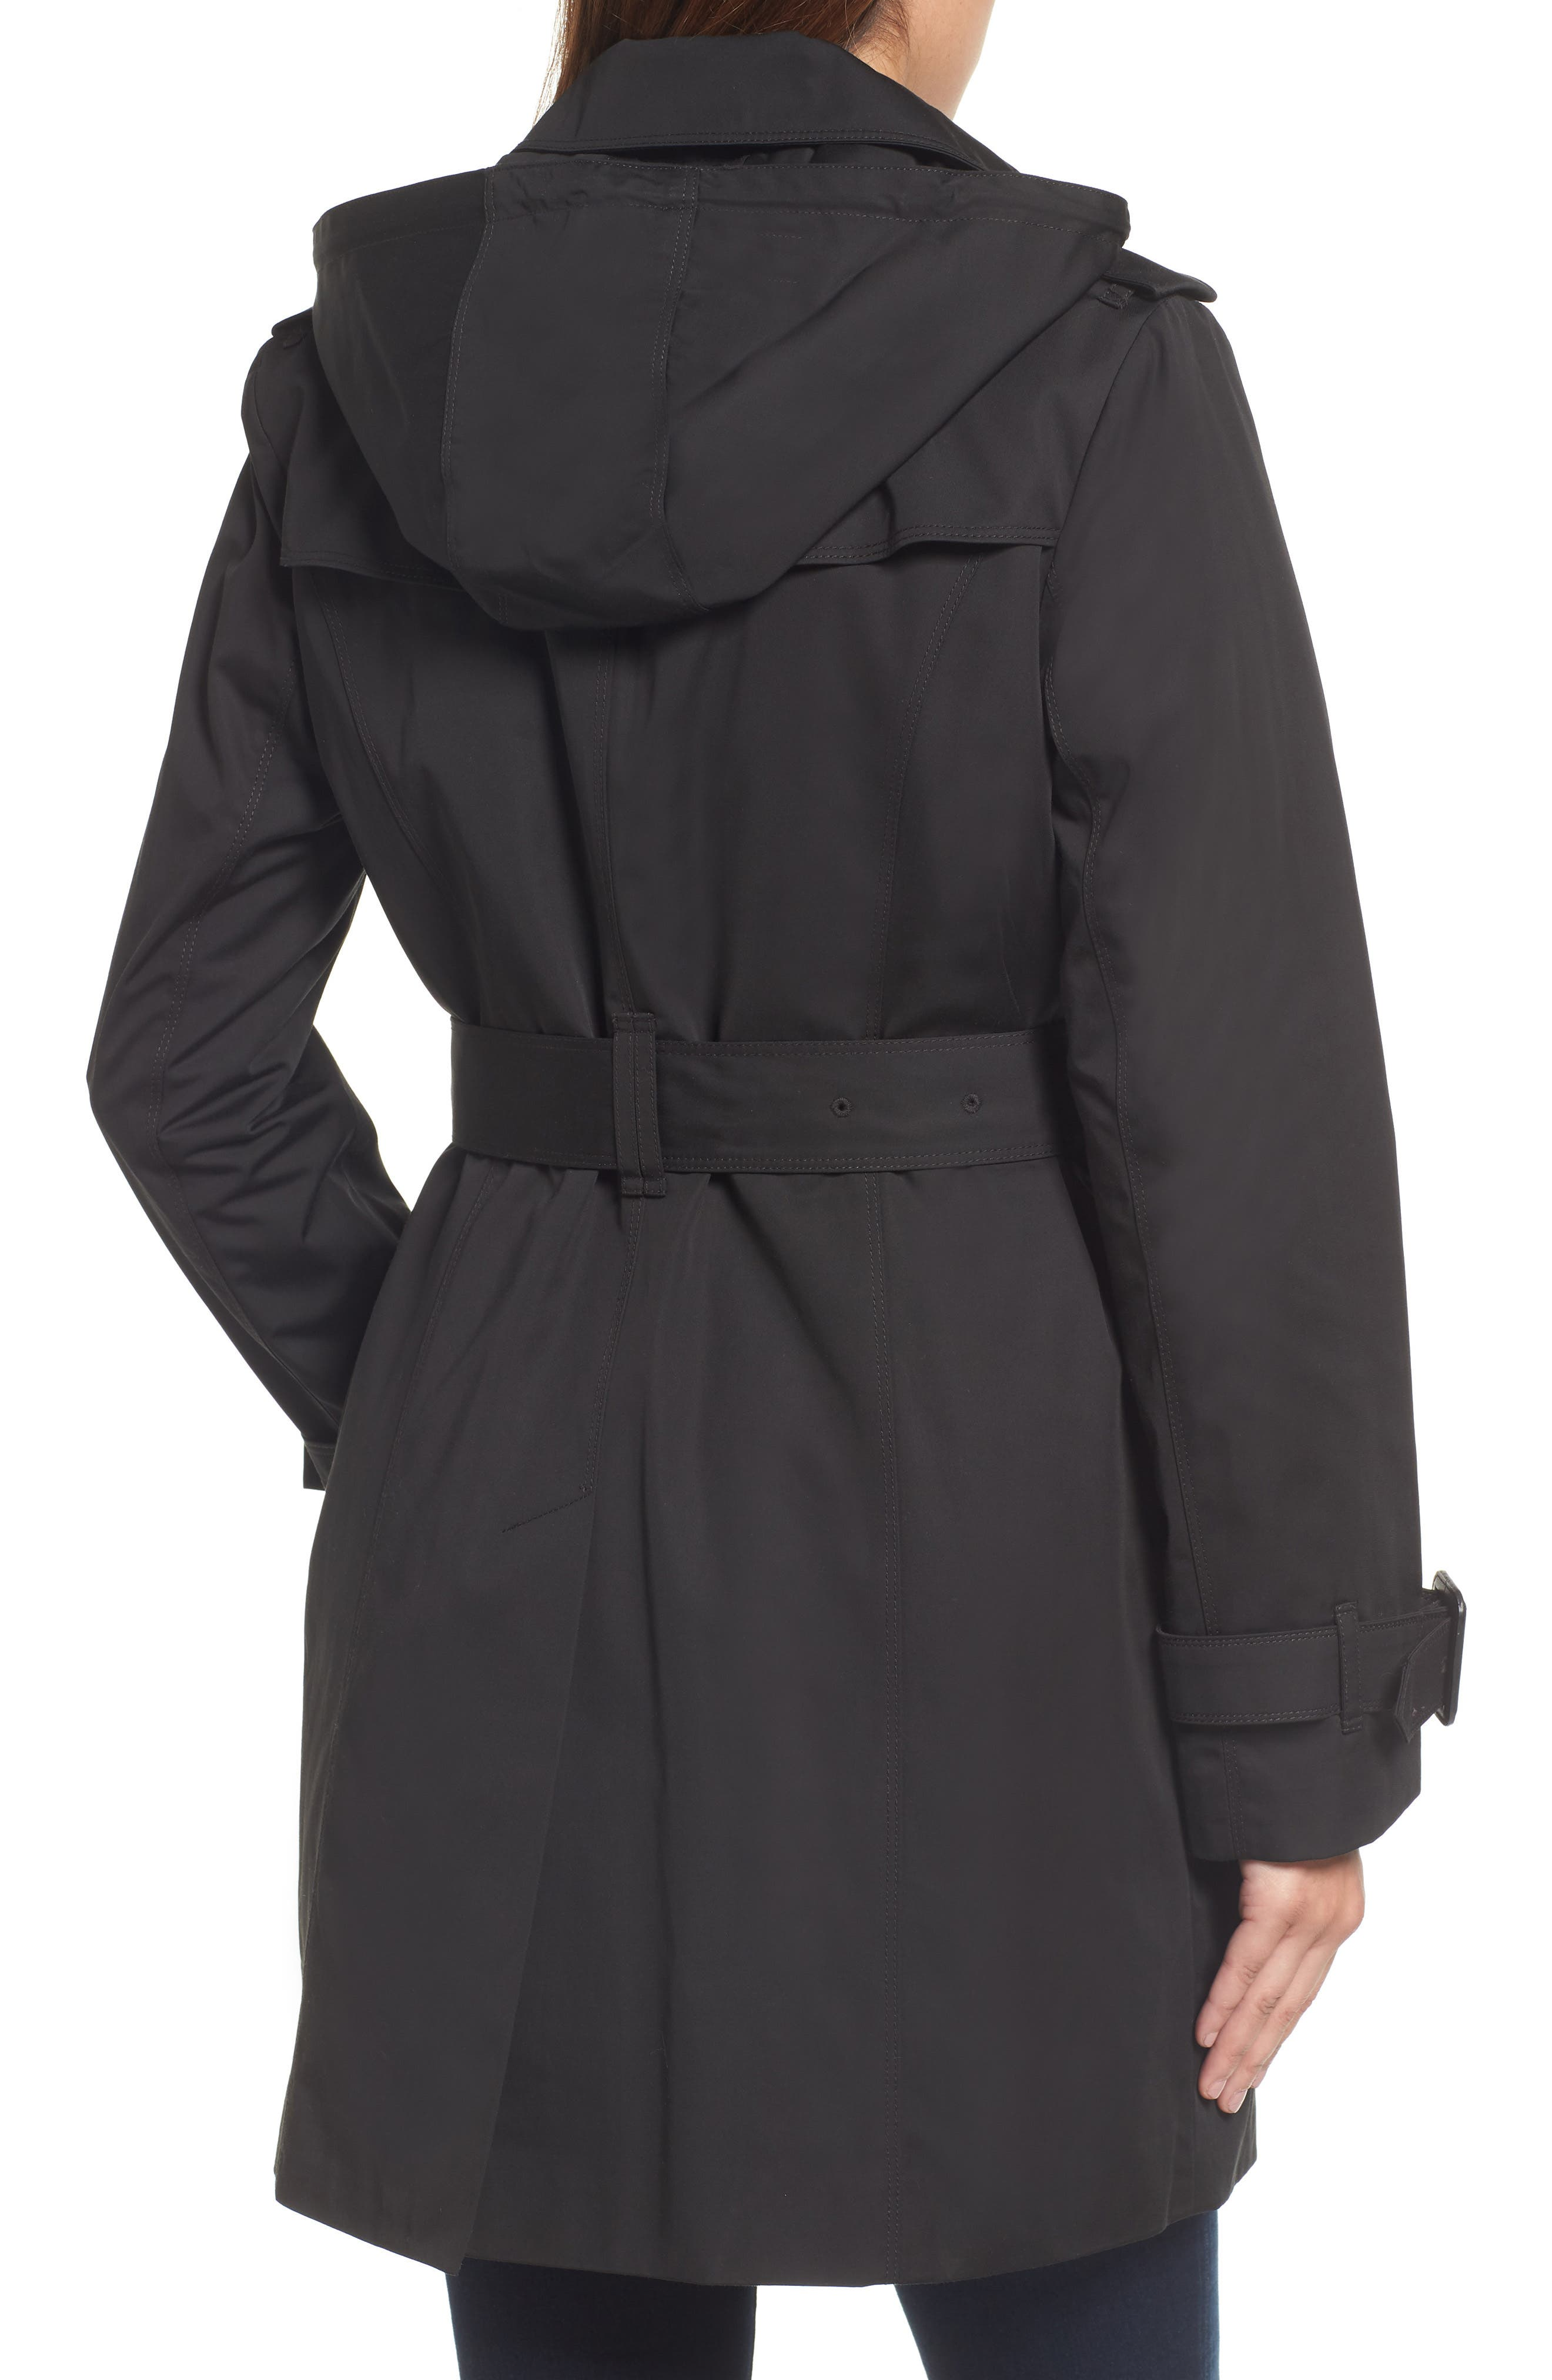 Heritage Trench Coat with Detachable Liner,                             Alternate thumbnail 2, color,                             Black